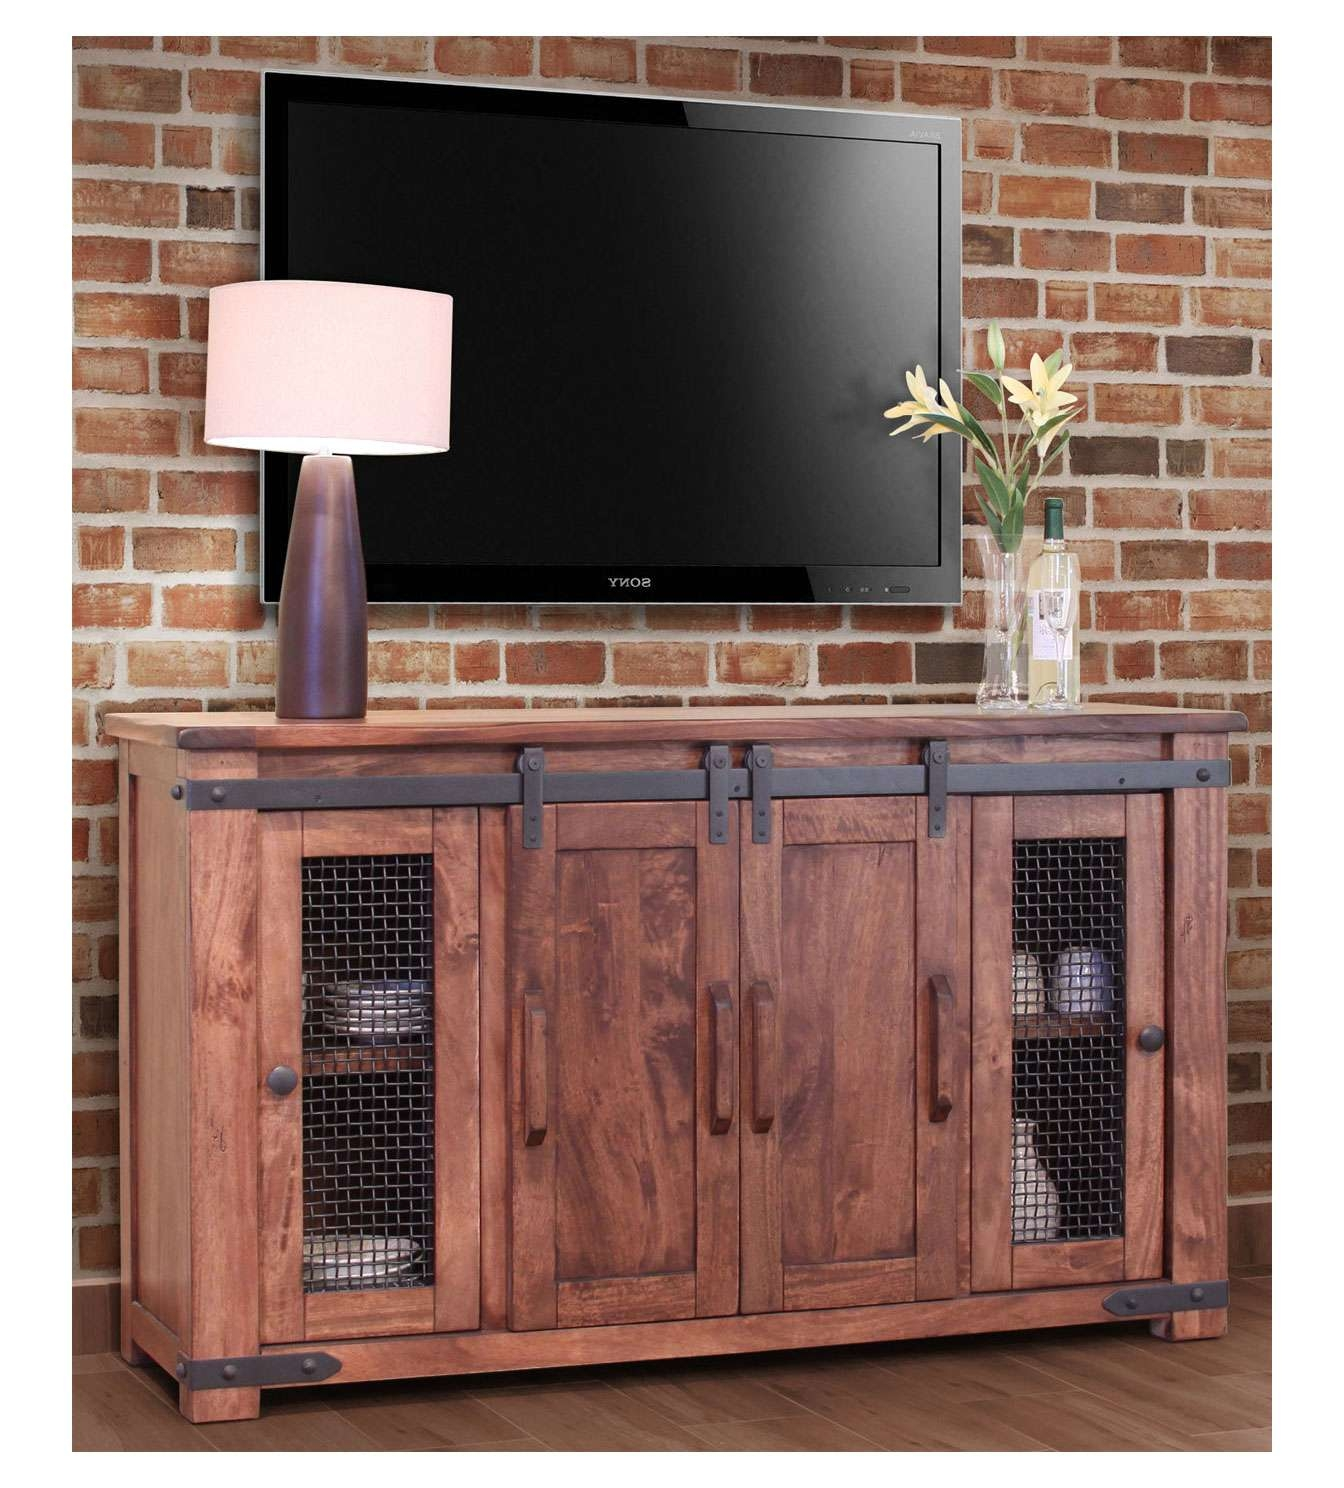 Tv : Best Rustic Tv Stand Designs Beautiful Rustic Tv Cabinets In Corner Tv Cabinets For Flat Screens With Doors (View 19 of 20)